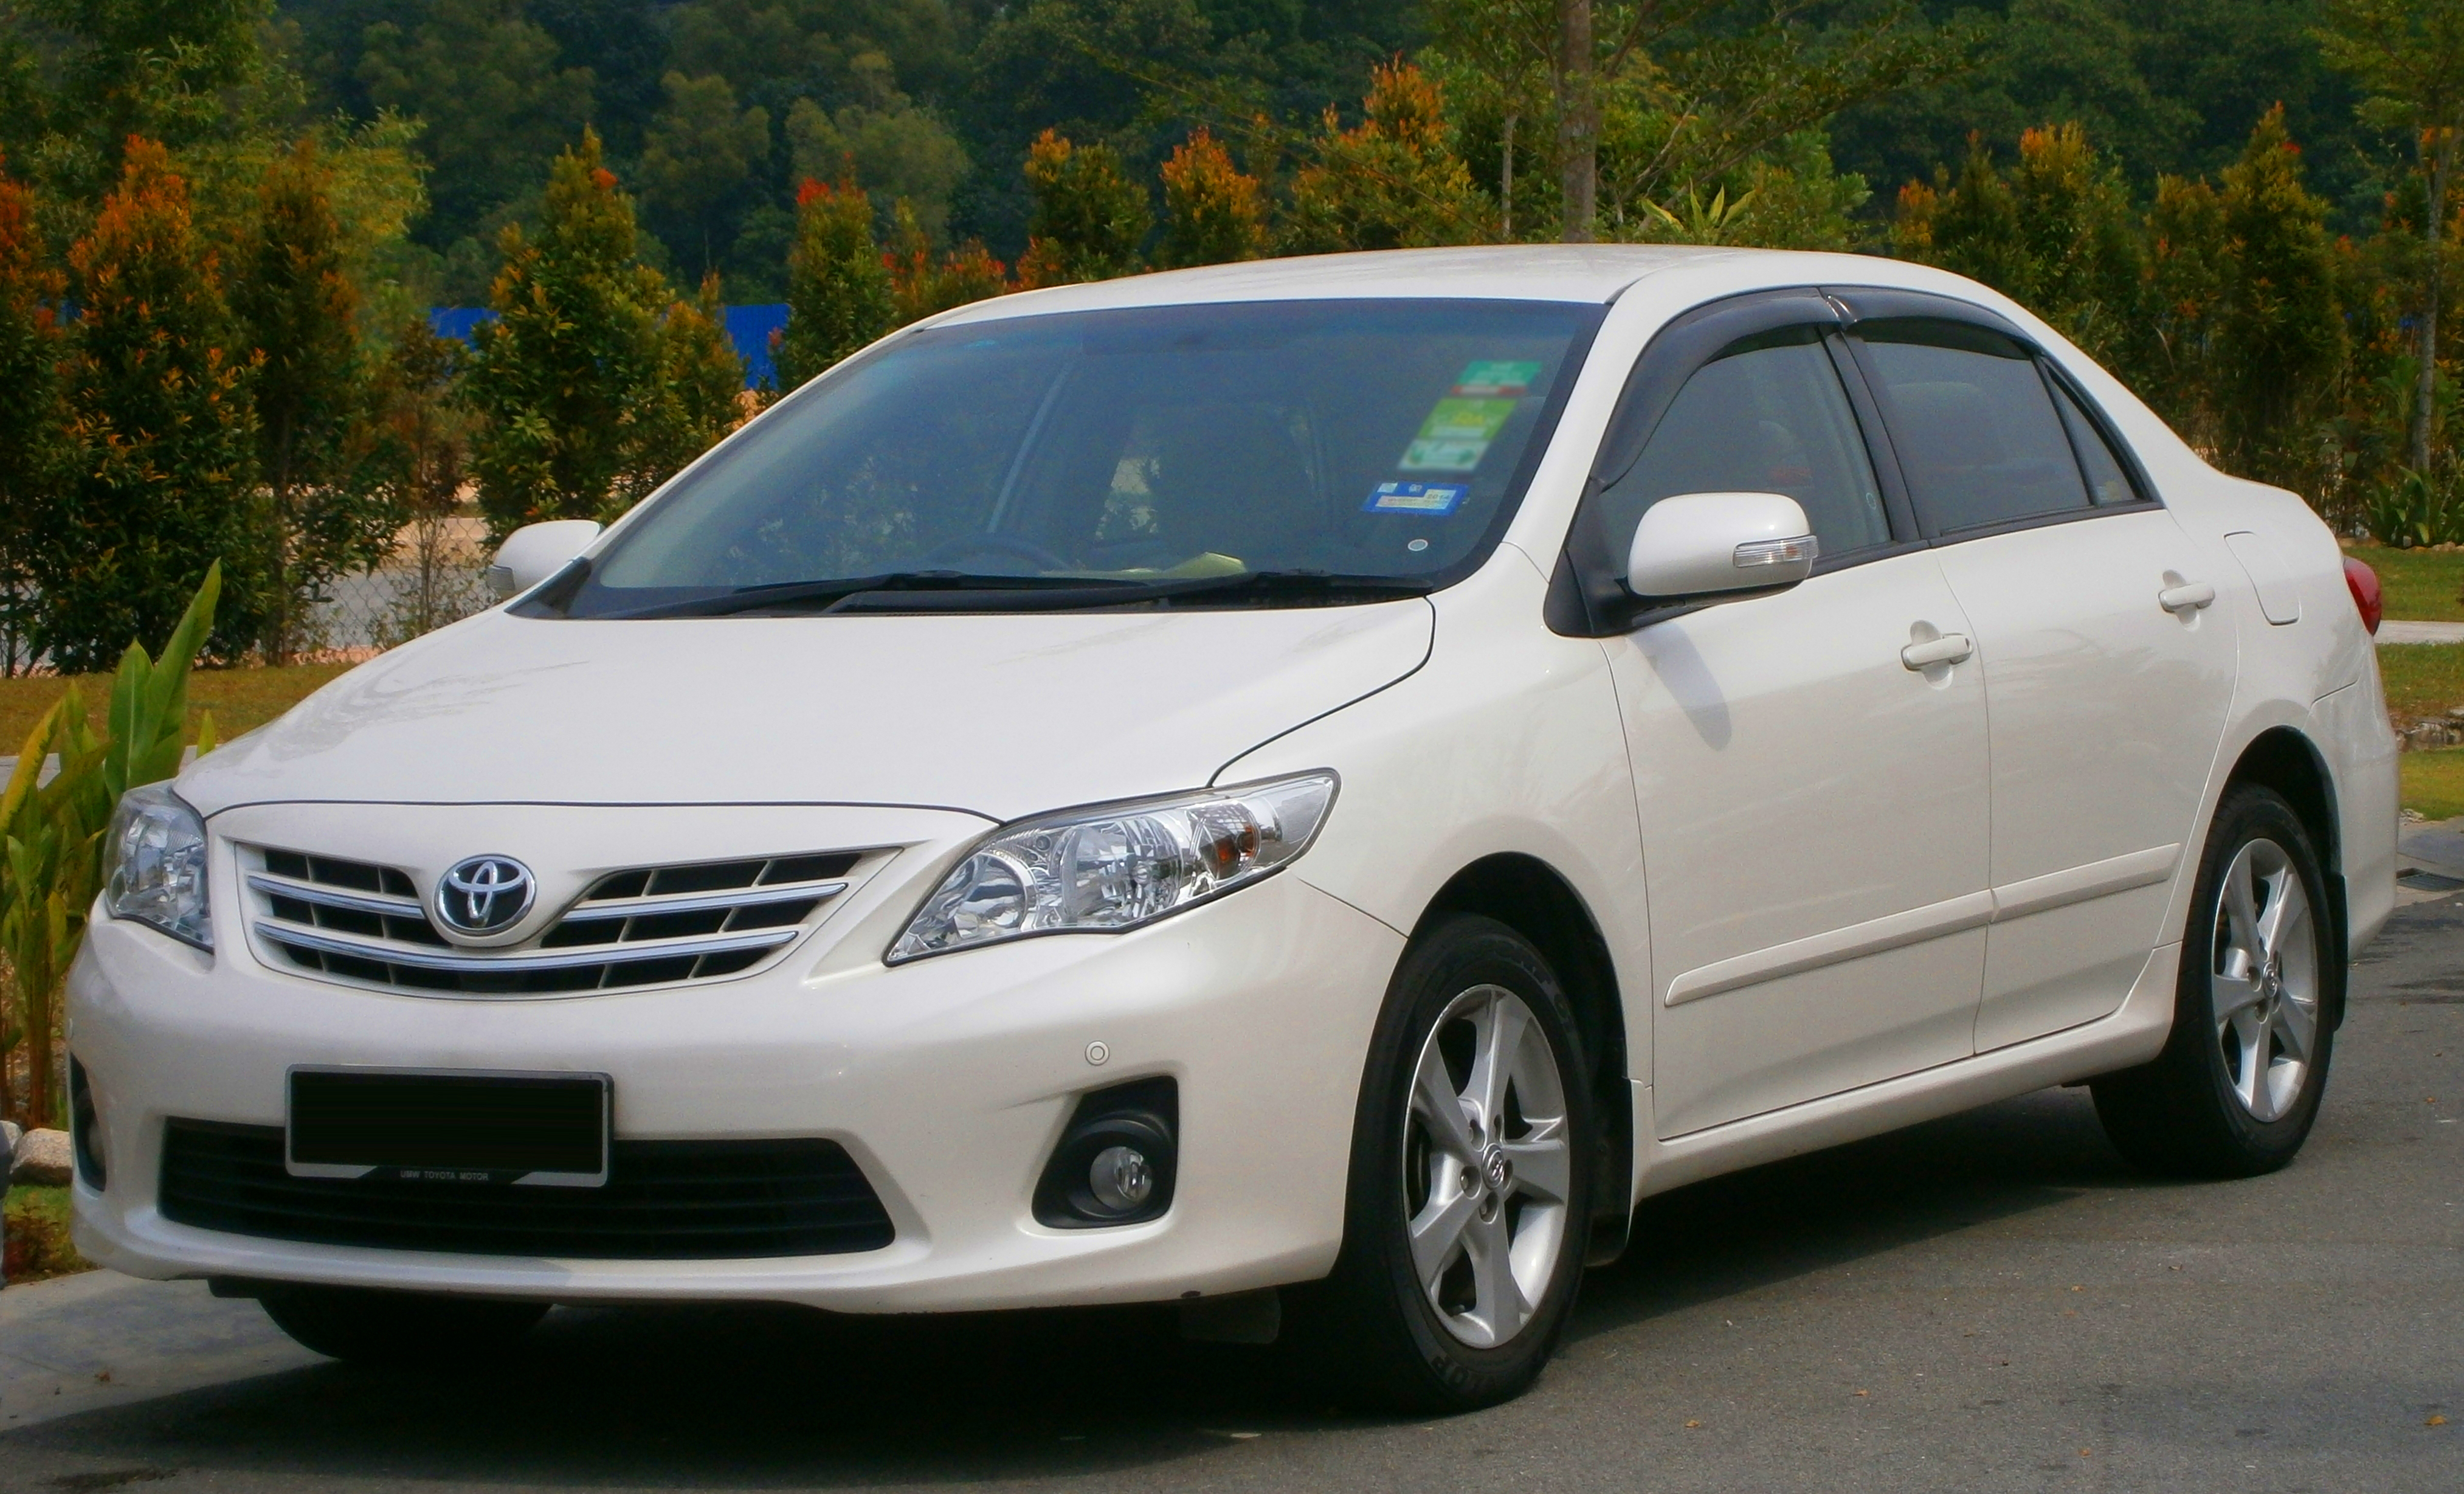 file 2011 toyota corolla altis 1 8e in puchong malaysia 01 jpg wikimedia commons. Black Bedroom Furniture Sets. Home Design Ideas